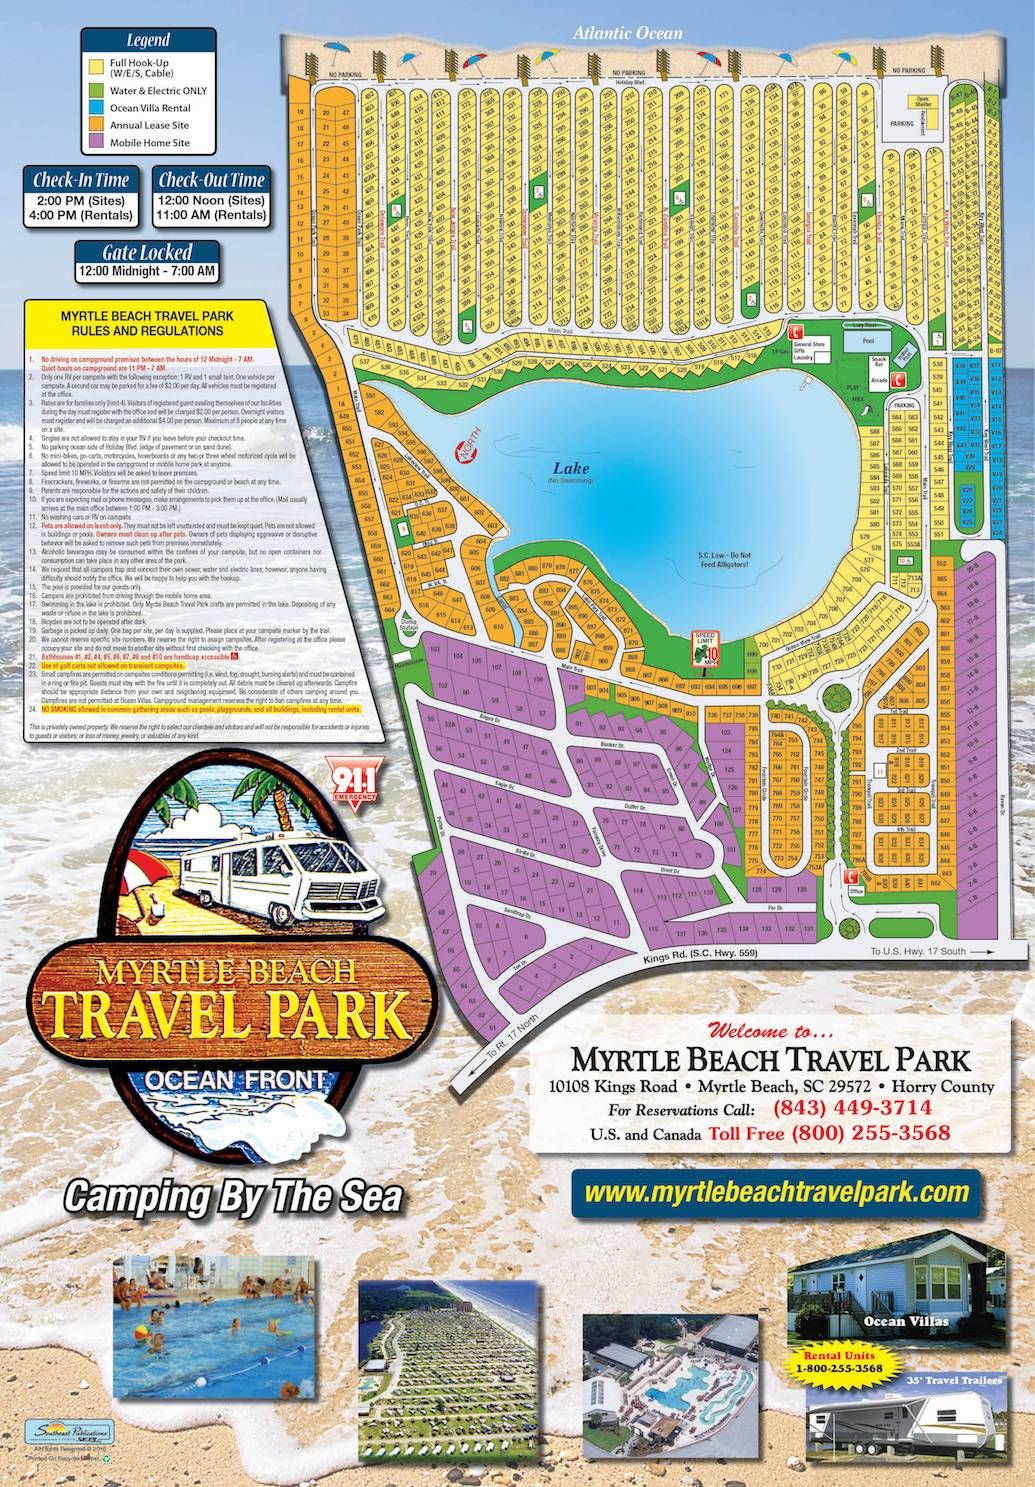 Maps & Directions Rv parks and campgrounds, Beach trip